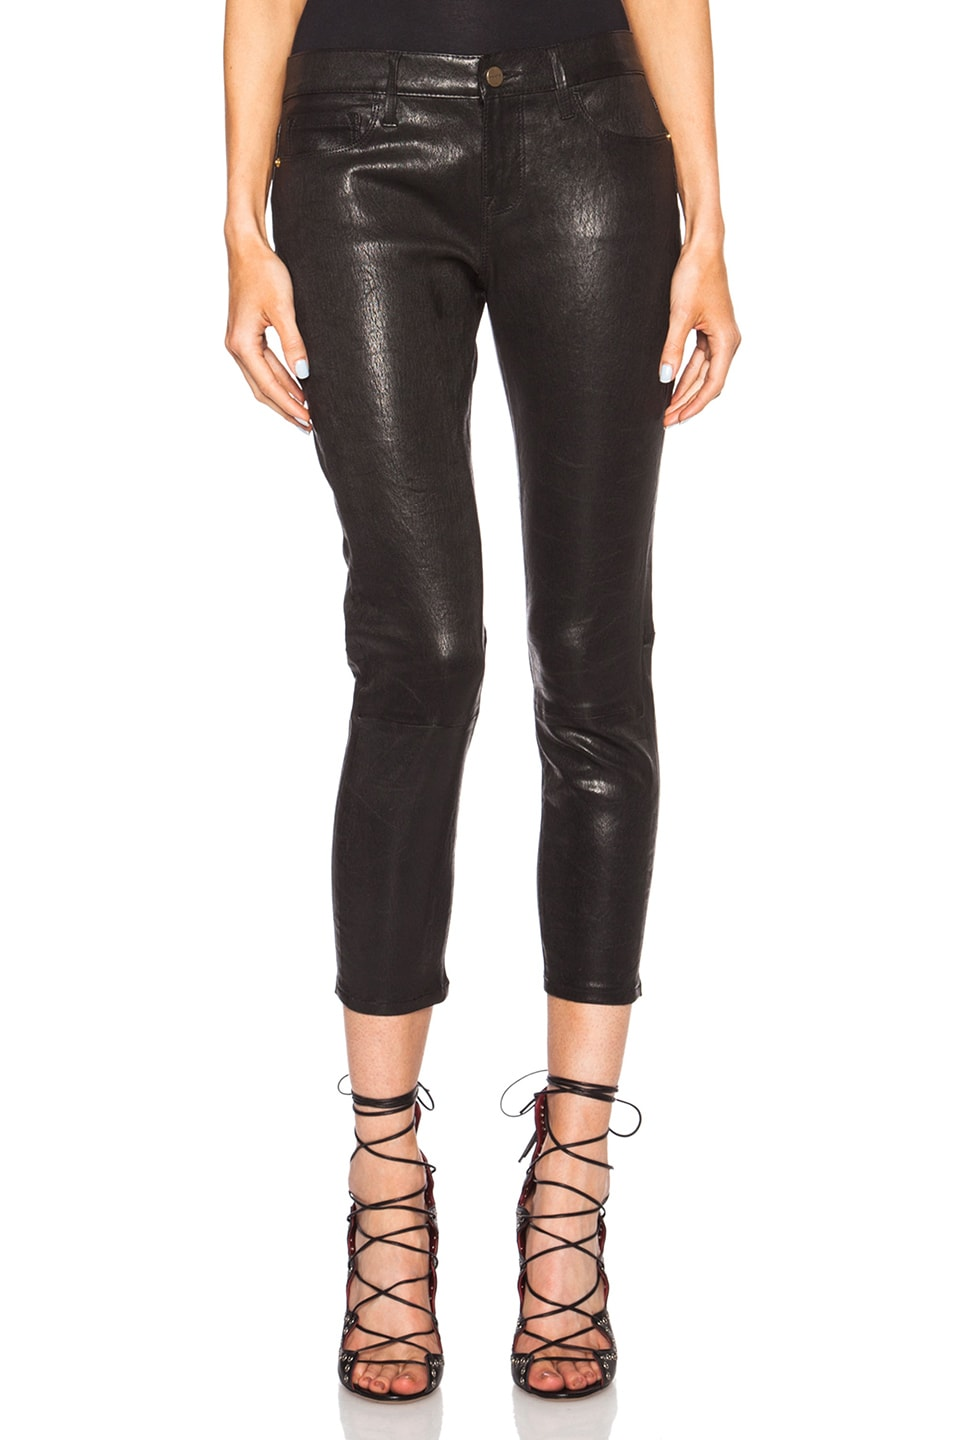 FRAME Denim Le Garcon Leather Pant in Washed Black | FWRD